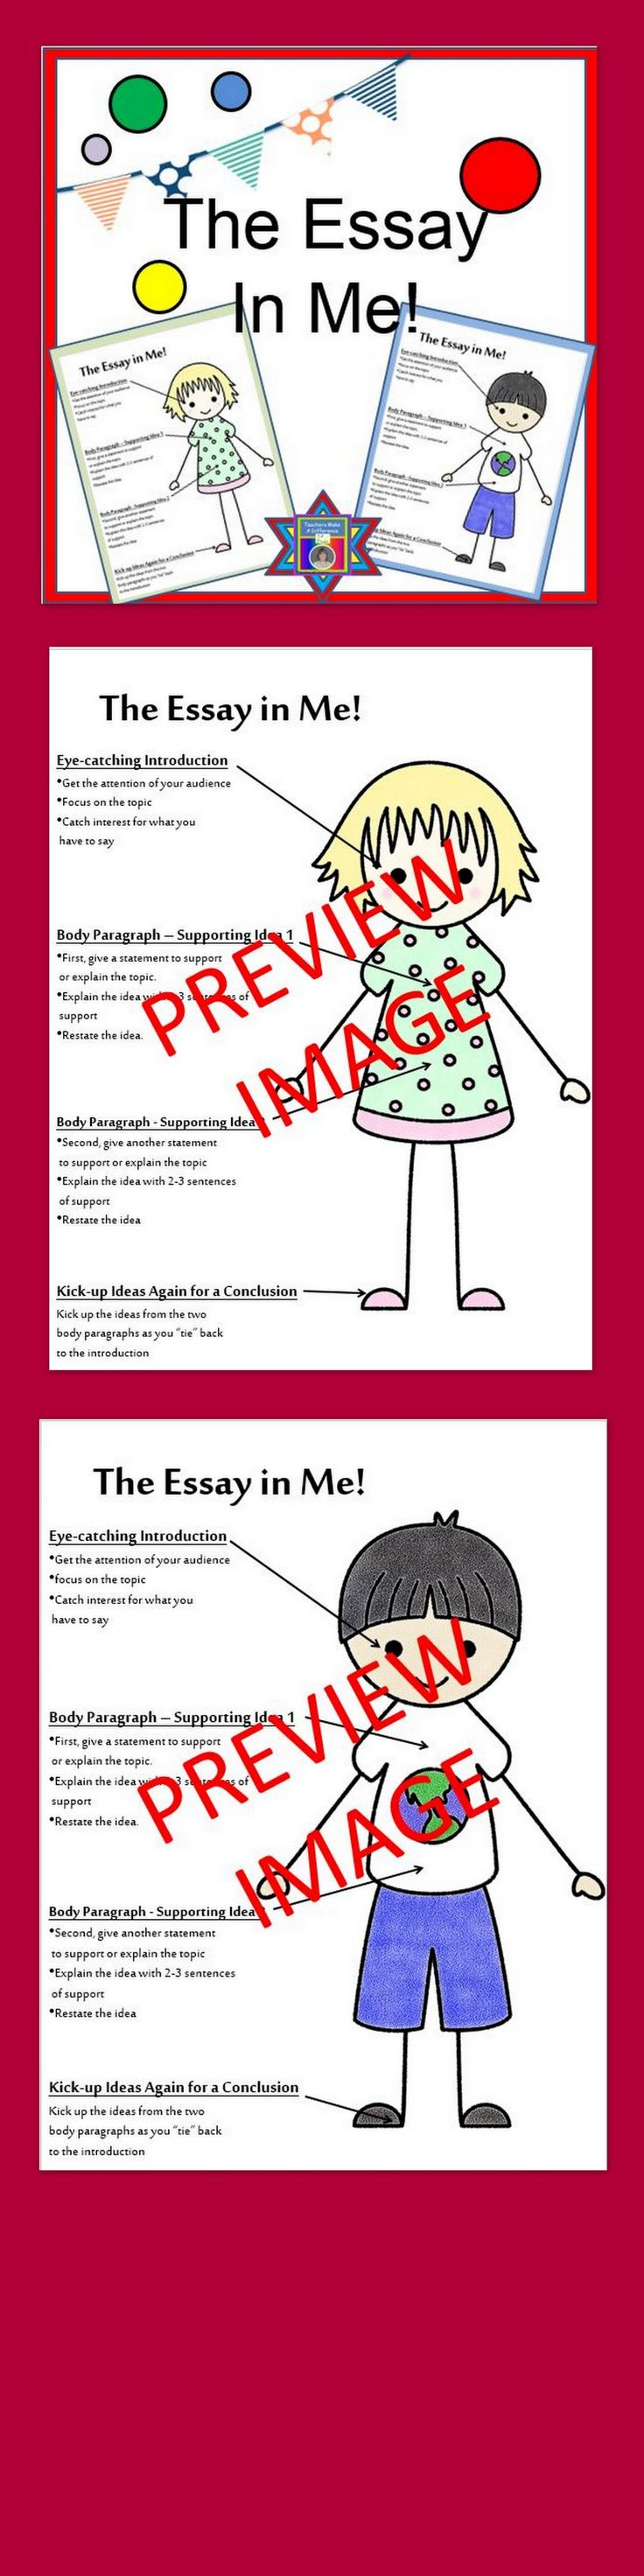 best images about essay writing anchor charts writing an essay writing teacher teacher board writing lessons writing ideas combining sources 2 combining boys students students organize